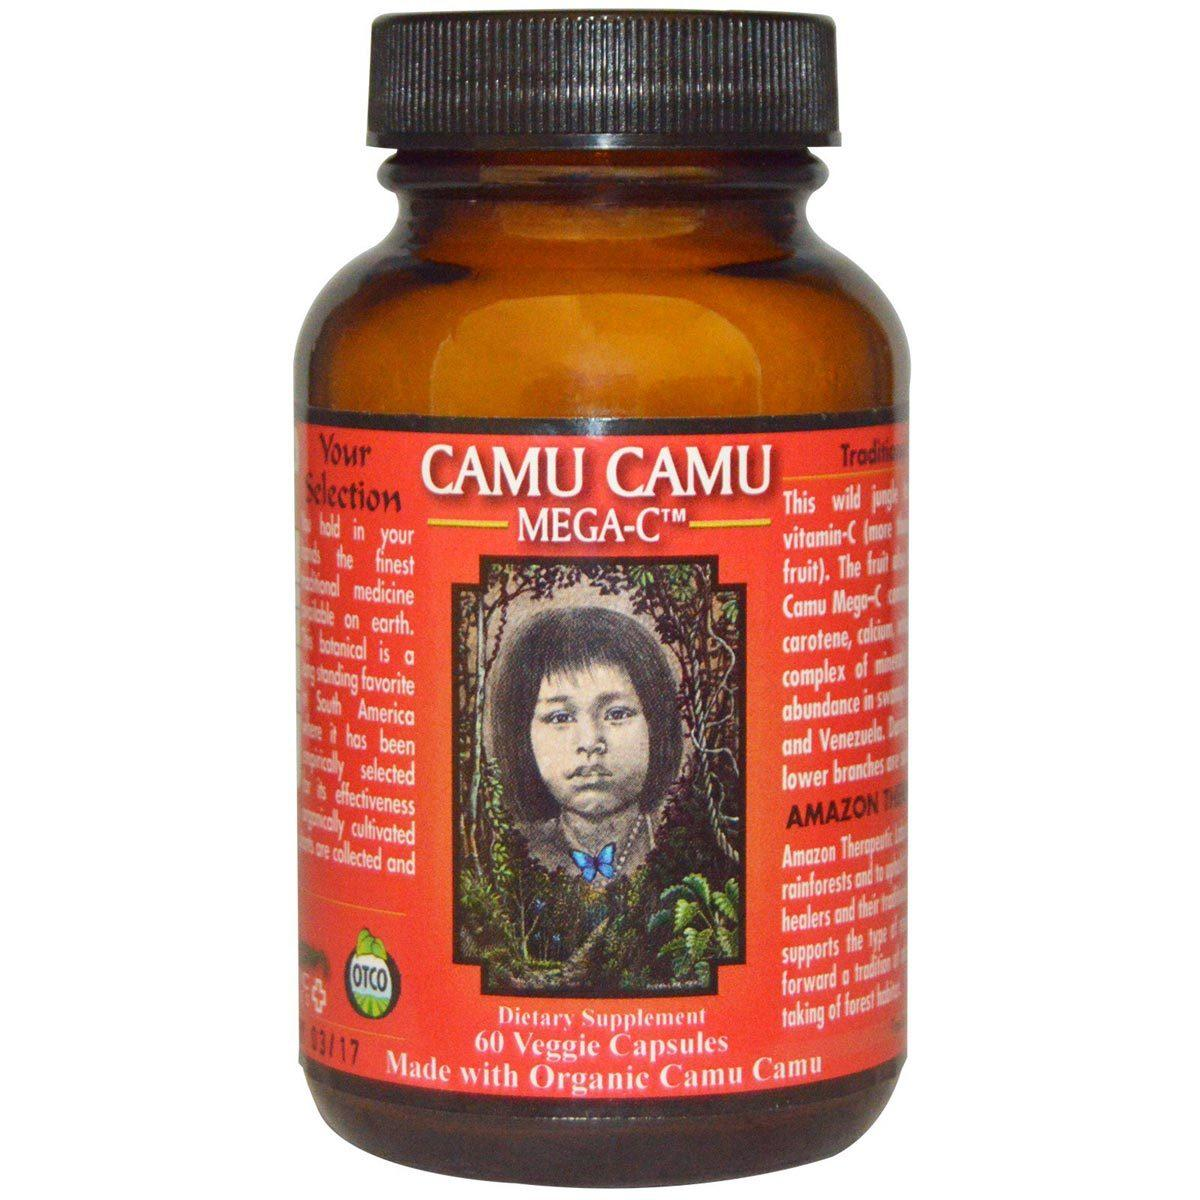 Amazon Therapeutic Labs Camu Camu Mega C 500mg 60 Caps Vitamins Amazon Therapeutic Labs  (1059029221419)